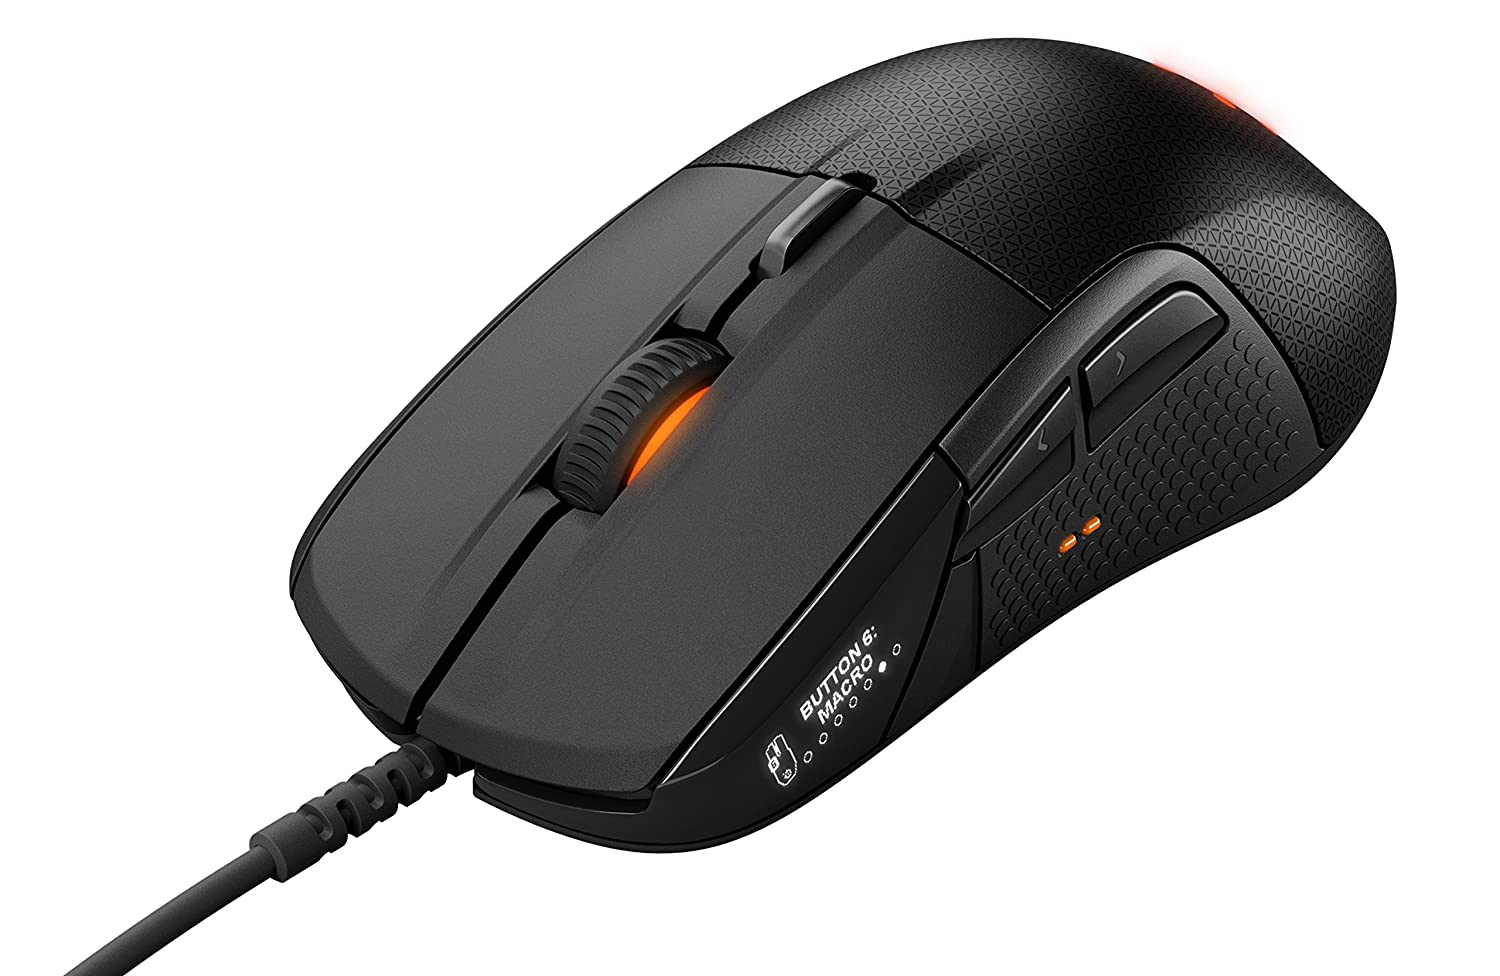 SteelSeries Rival 700 best gaming mouse